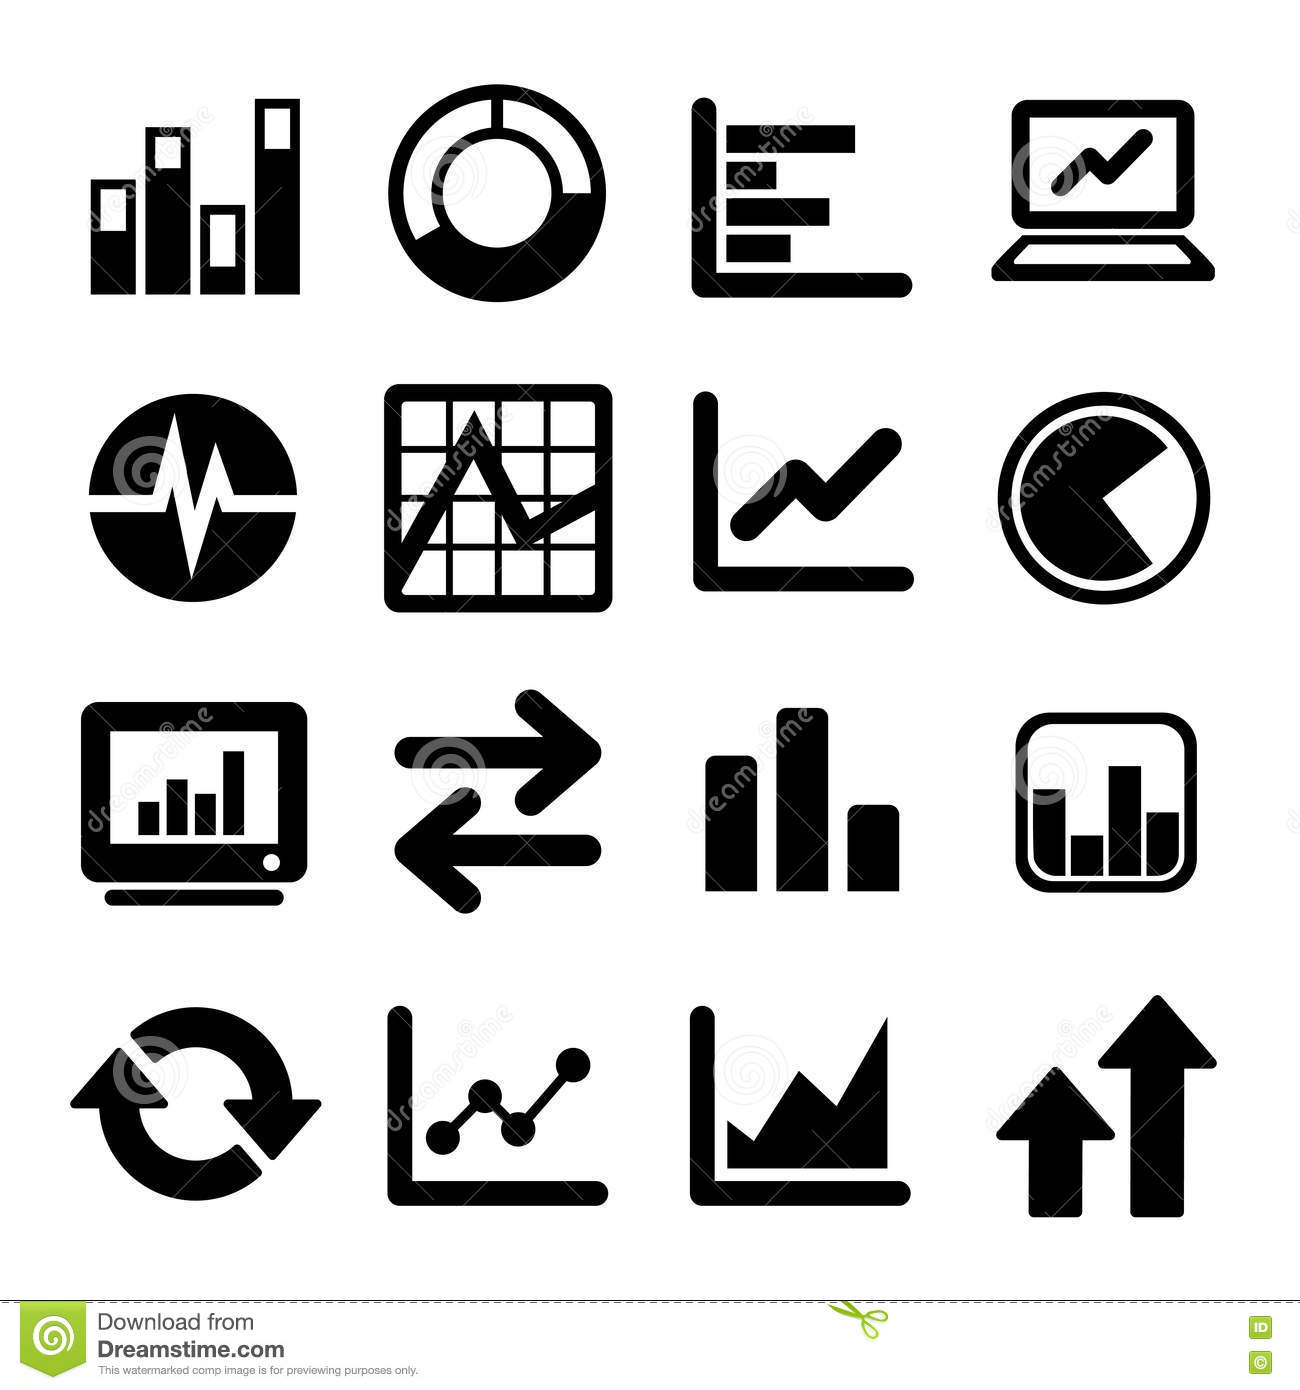 Free Currency Sign Download  Top  Economies  Symbols And